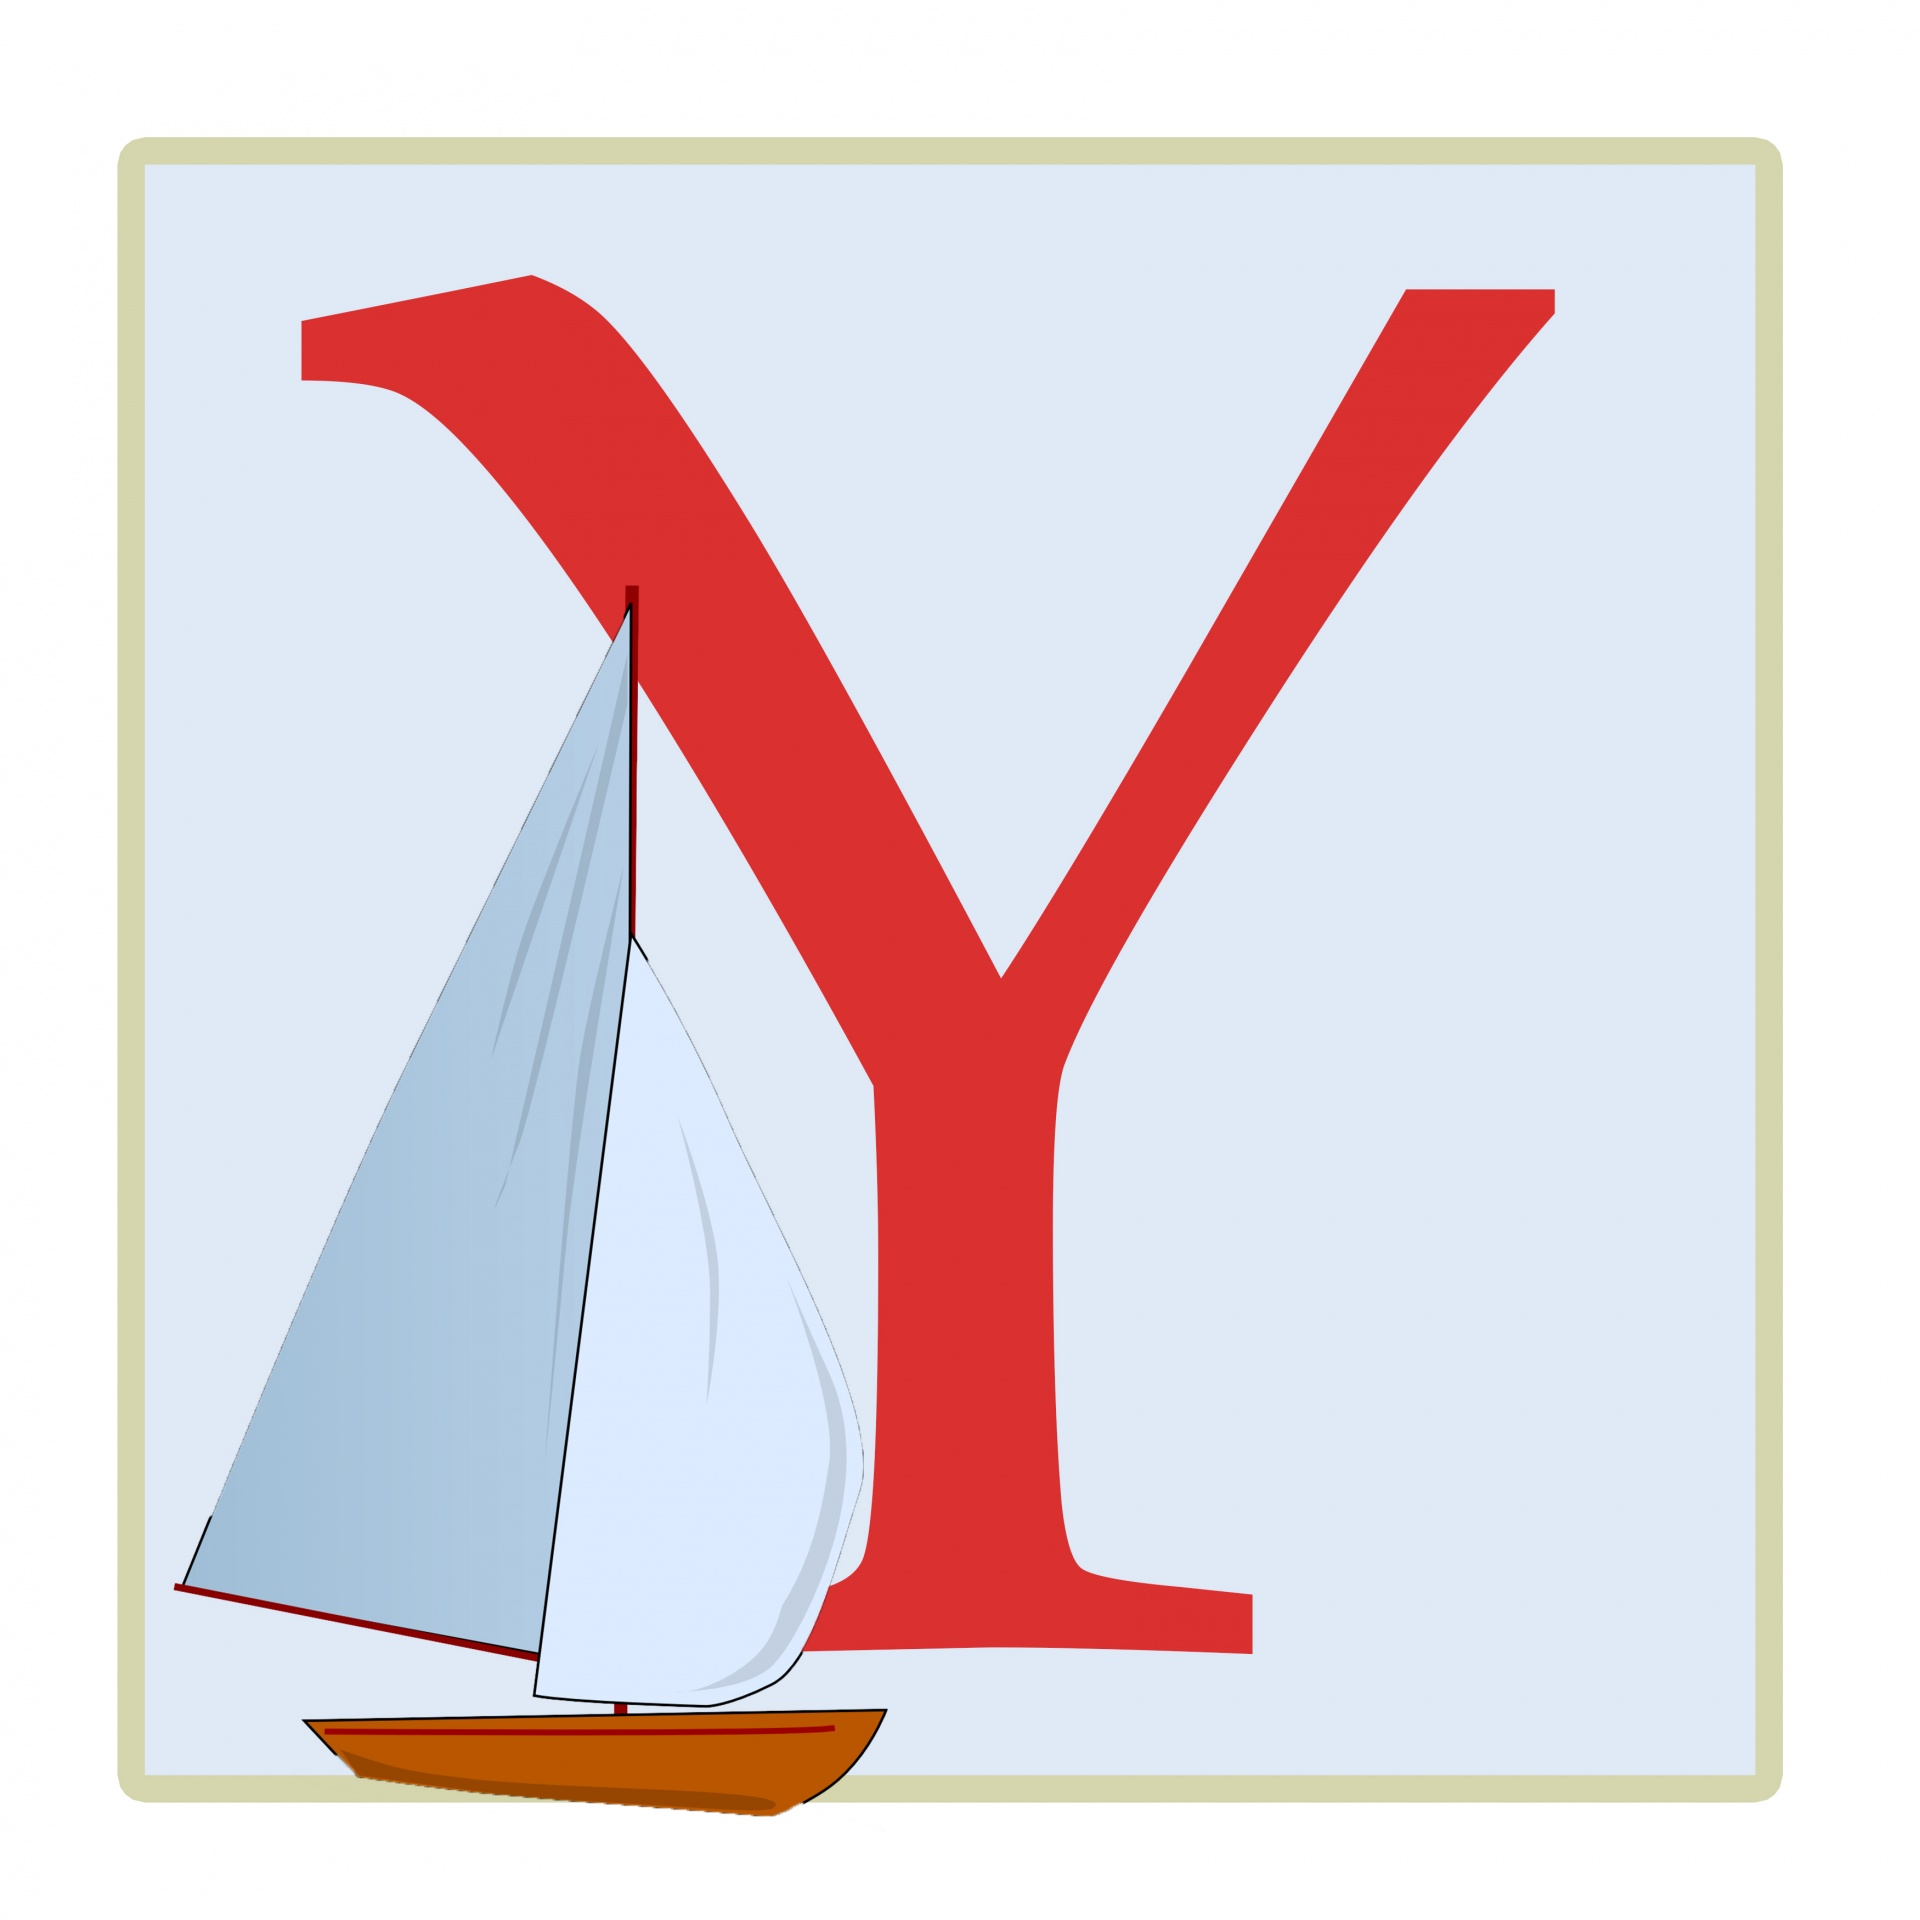 Letter Y Yacht Illustration Free Stock Photo